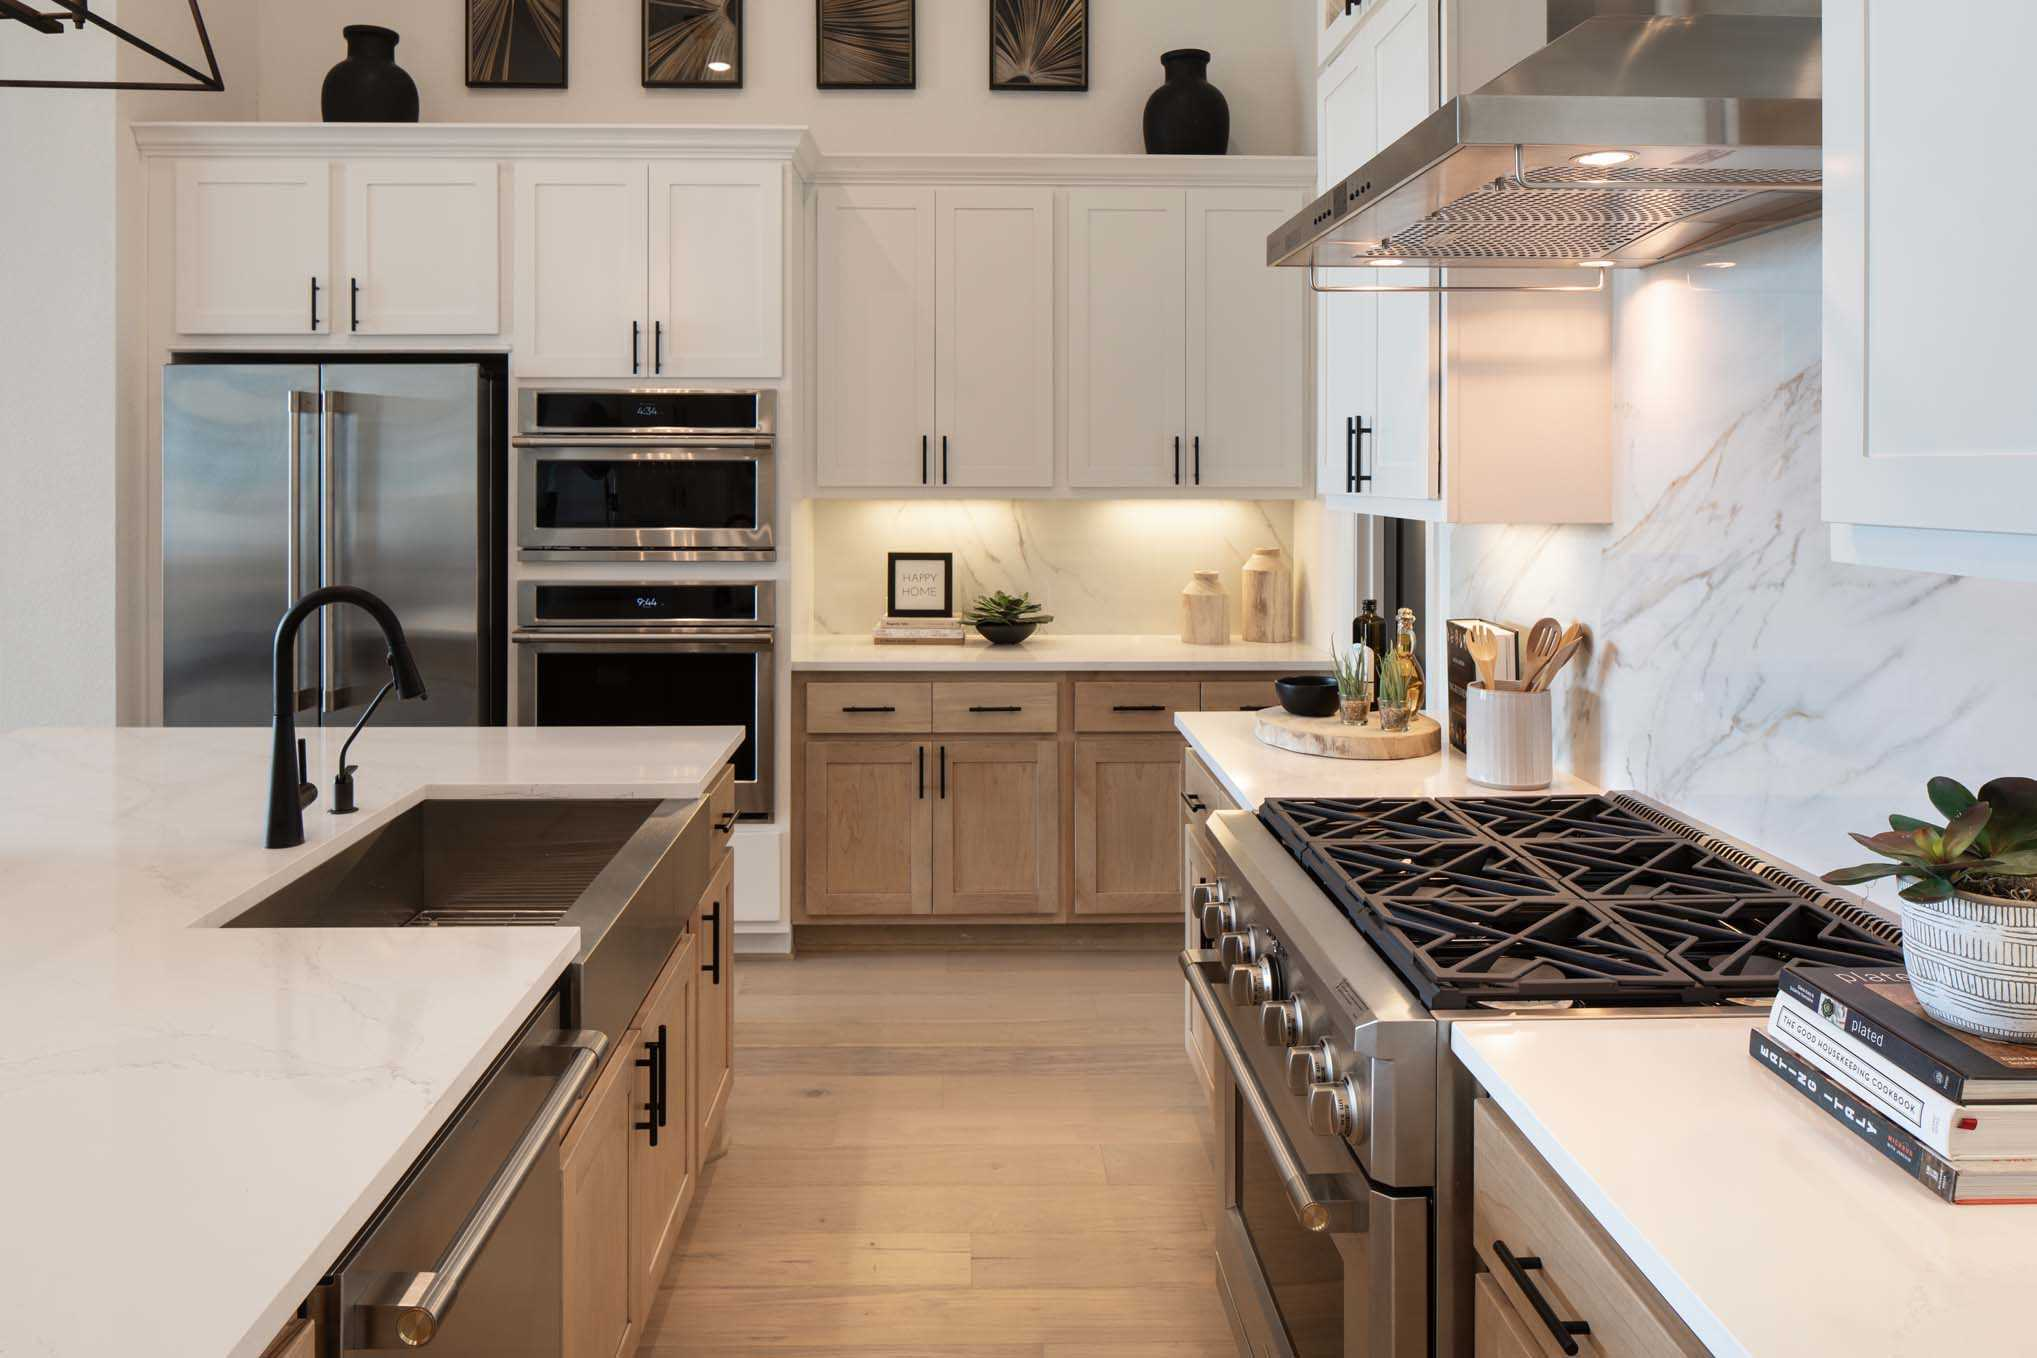 Kitchen featured in the Plan 272 By Highland Homes in Dallas, TX